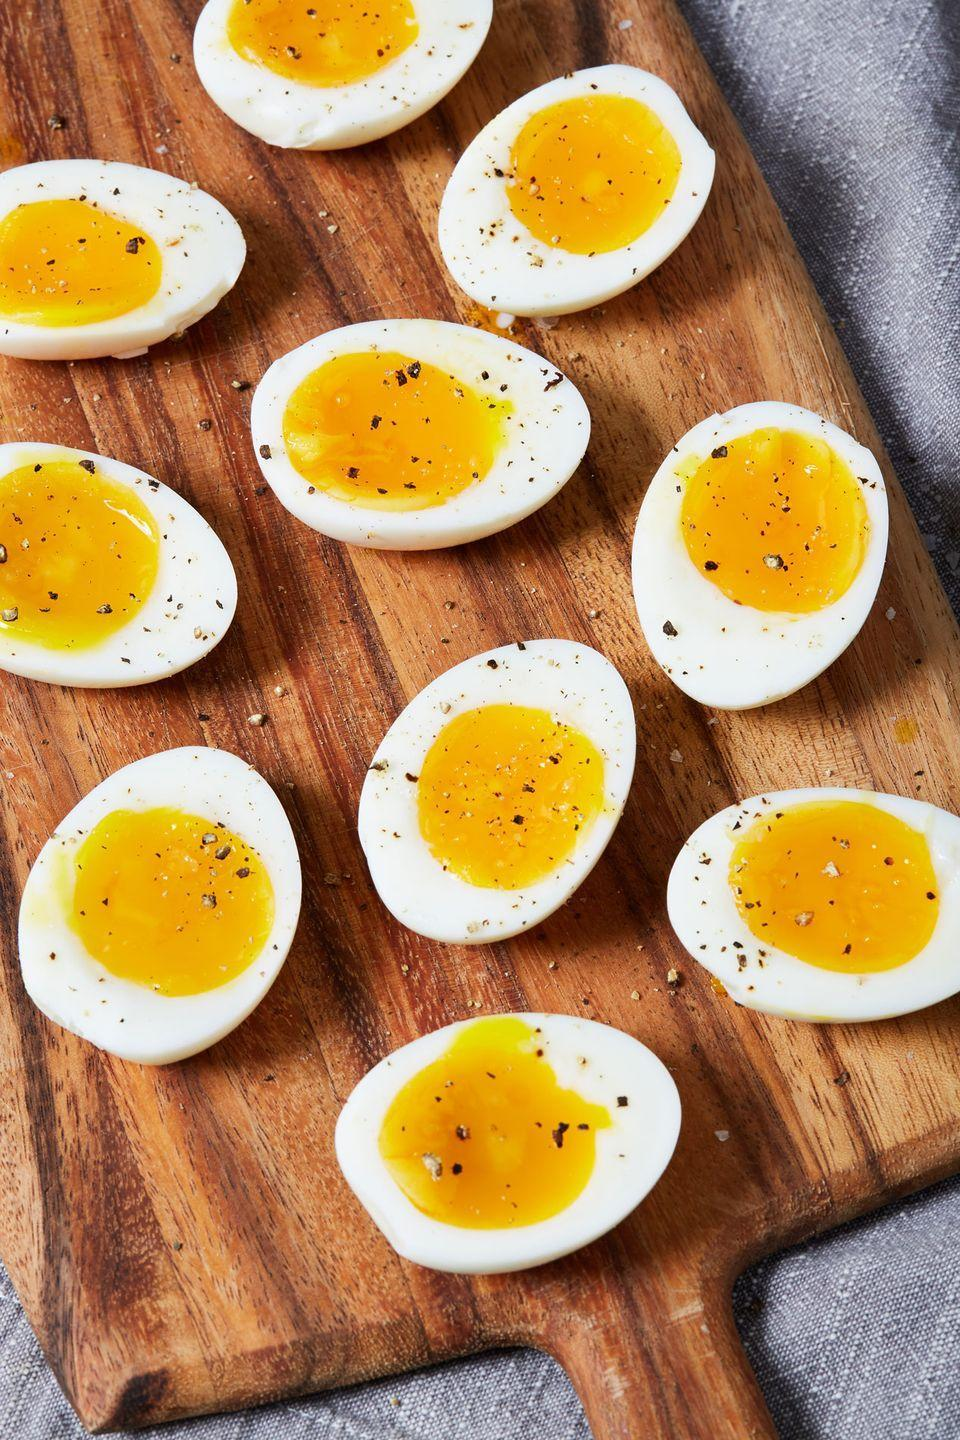 """<p>As simple as can be!</p><p>Get the recipe from <a href=""""https://www.delish.com/cooking/recipe-ideas/a29861001/how-to-soft-boil-eggs/"""" rel=""""nofollow noopener"""" target=""""_blank"""" data-ylk=""""slk:Delish."""" class=""""link rapid-noclick-resp"""">Delish.</a></p>"""